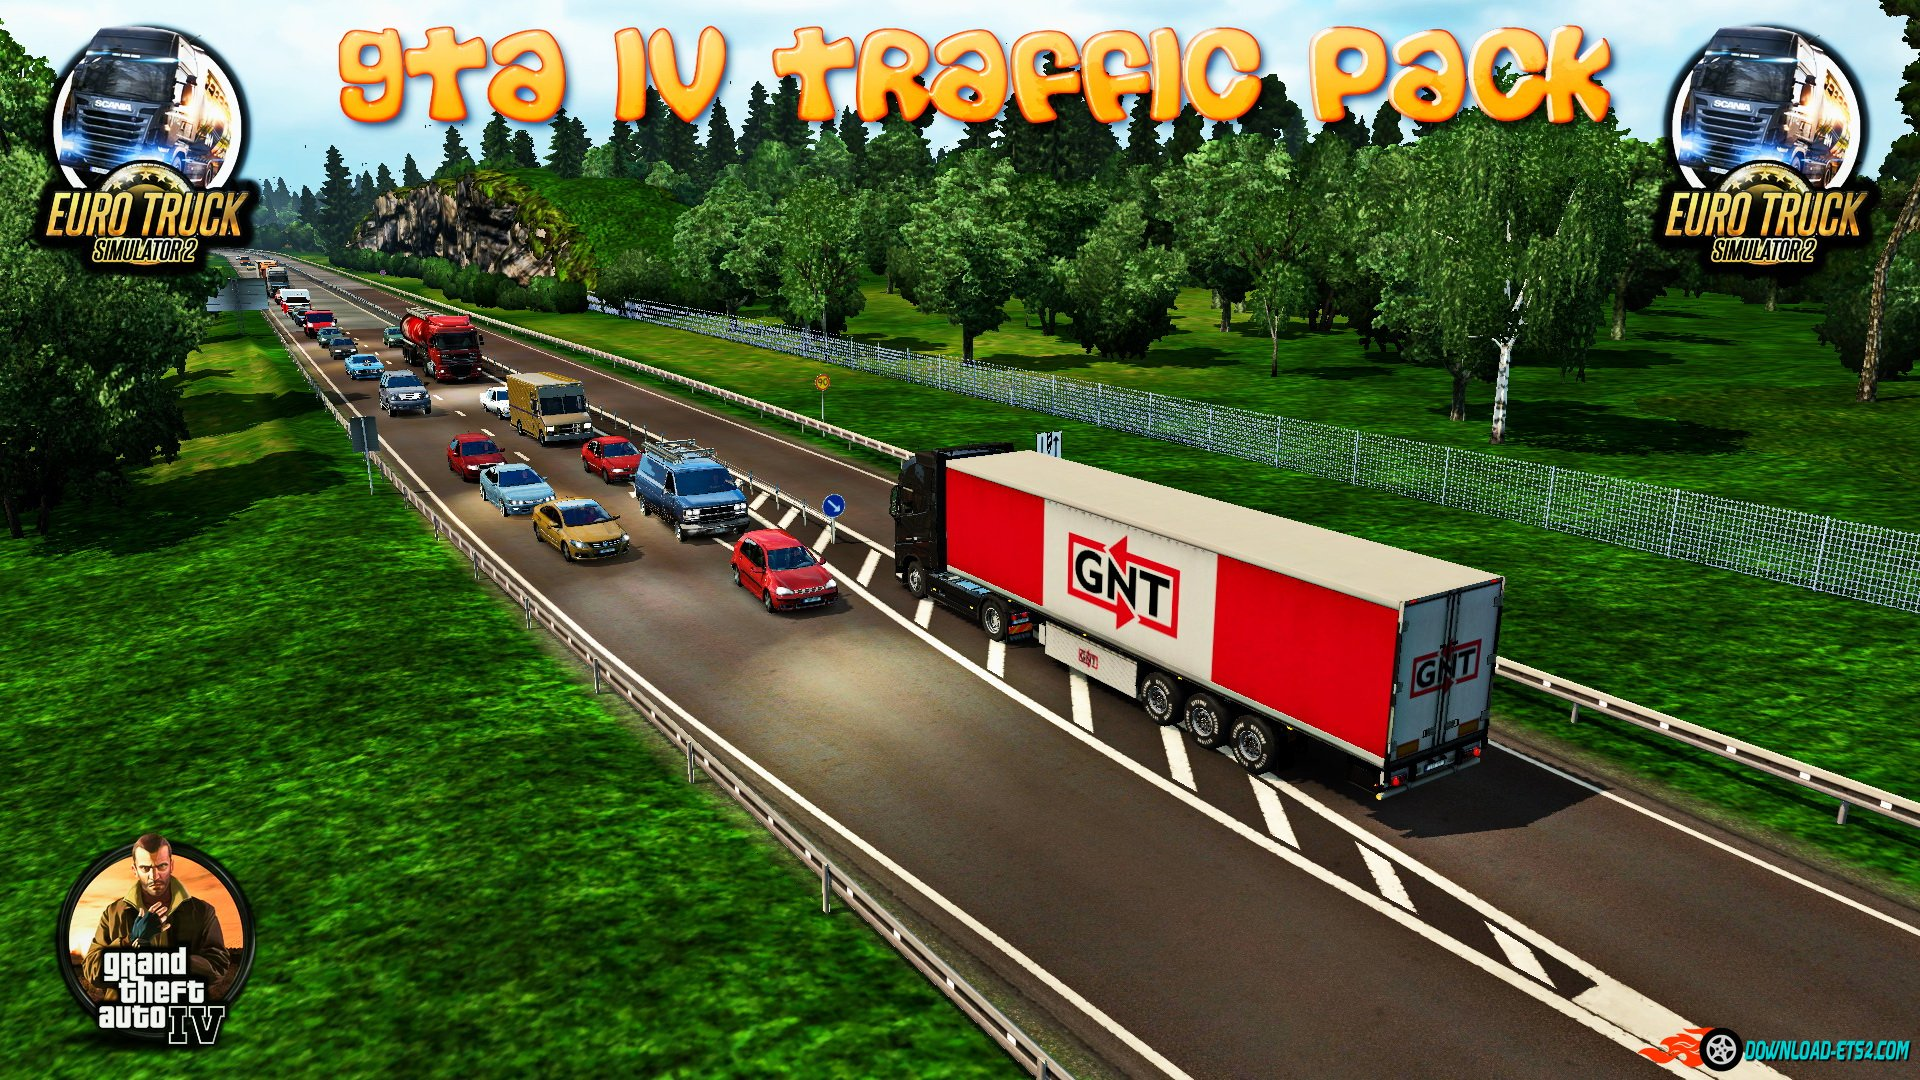 GTA IV Traffic Pack v1.1 (Final Edition) by alkonavt96